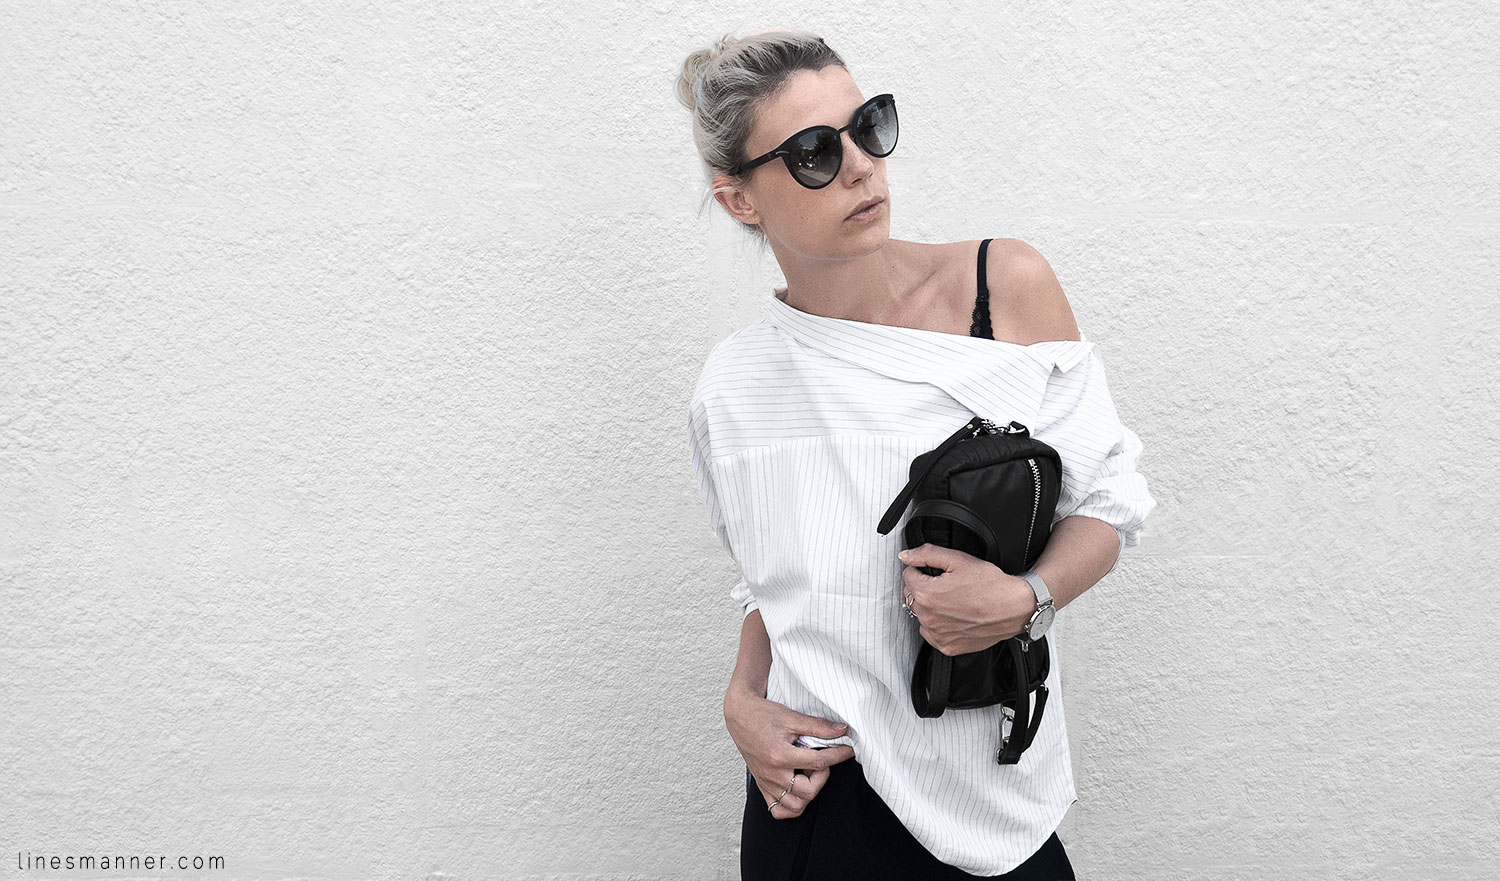 Lines-Manner-Simplicity-Off_shoulder-Monochrome-Noway_Monday-Details-Edgy6Backward-Sleek Statement_piece-Pinstripe-Business-Shirt-Minimal-Essentials-Outfit-Fashion-Minimal_fashion-Slides-Everlane-9